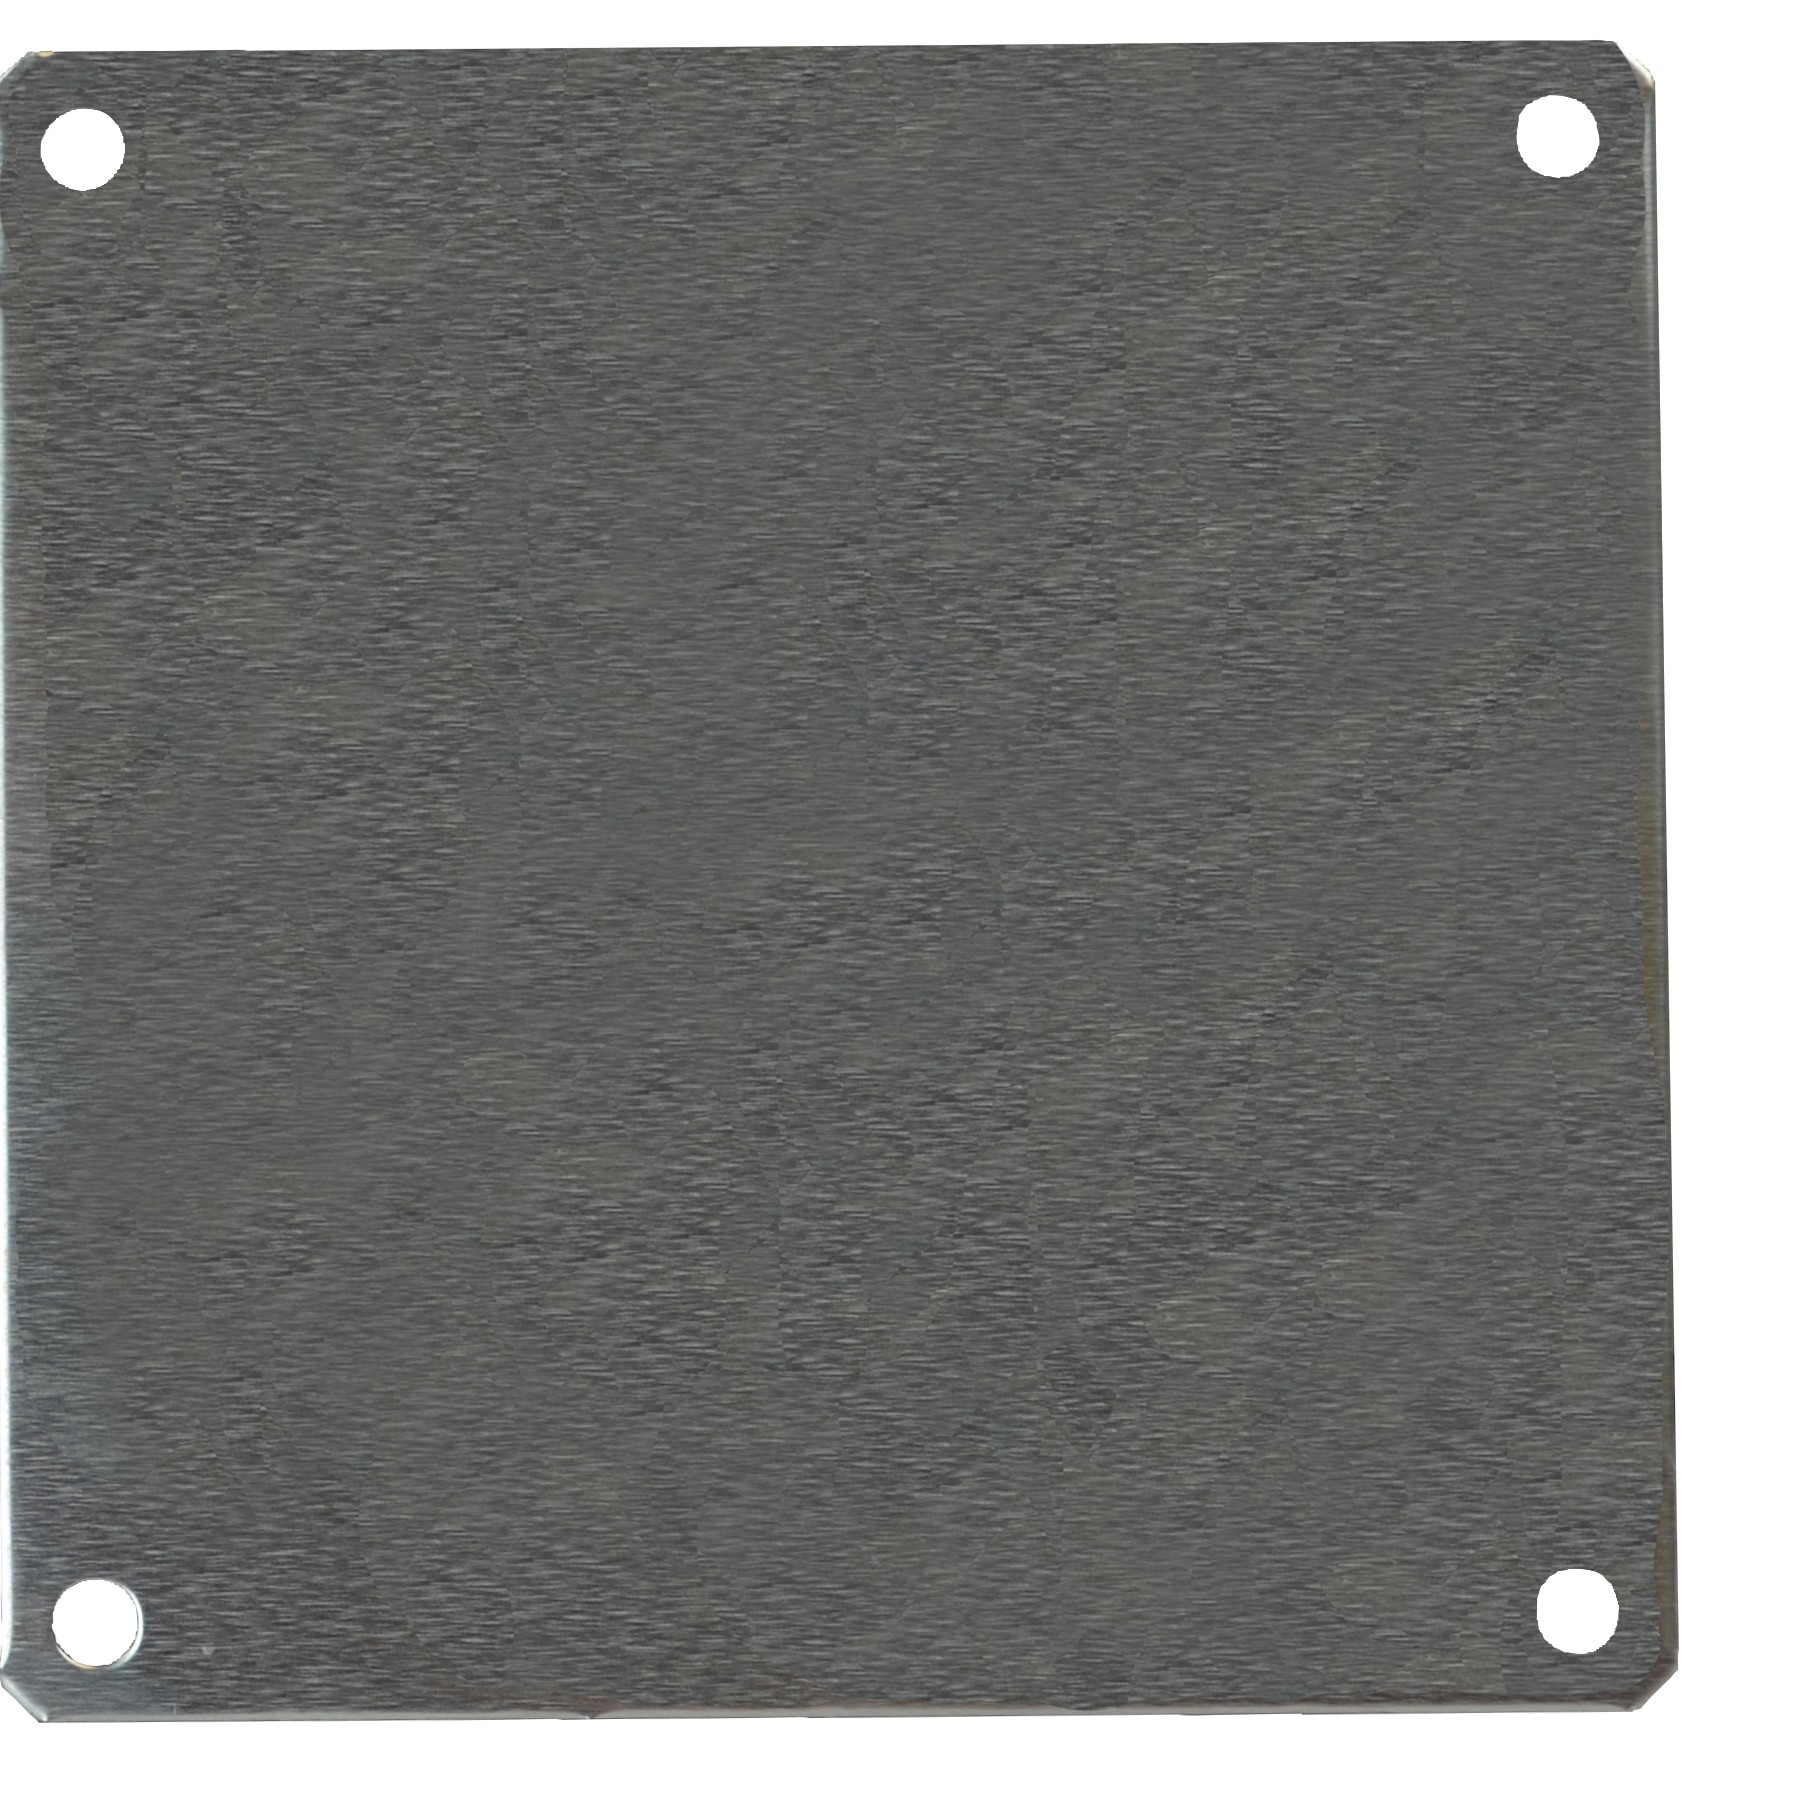 PLA66 - Aluminum Enclosure Back Panel Kit